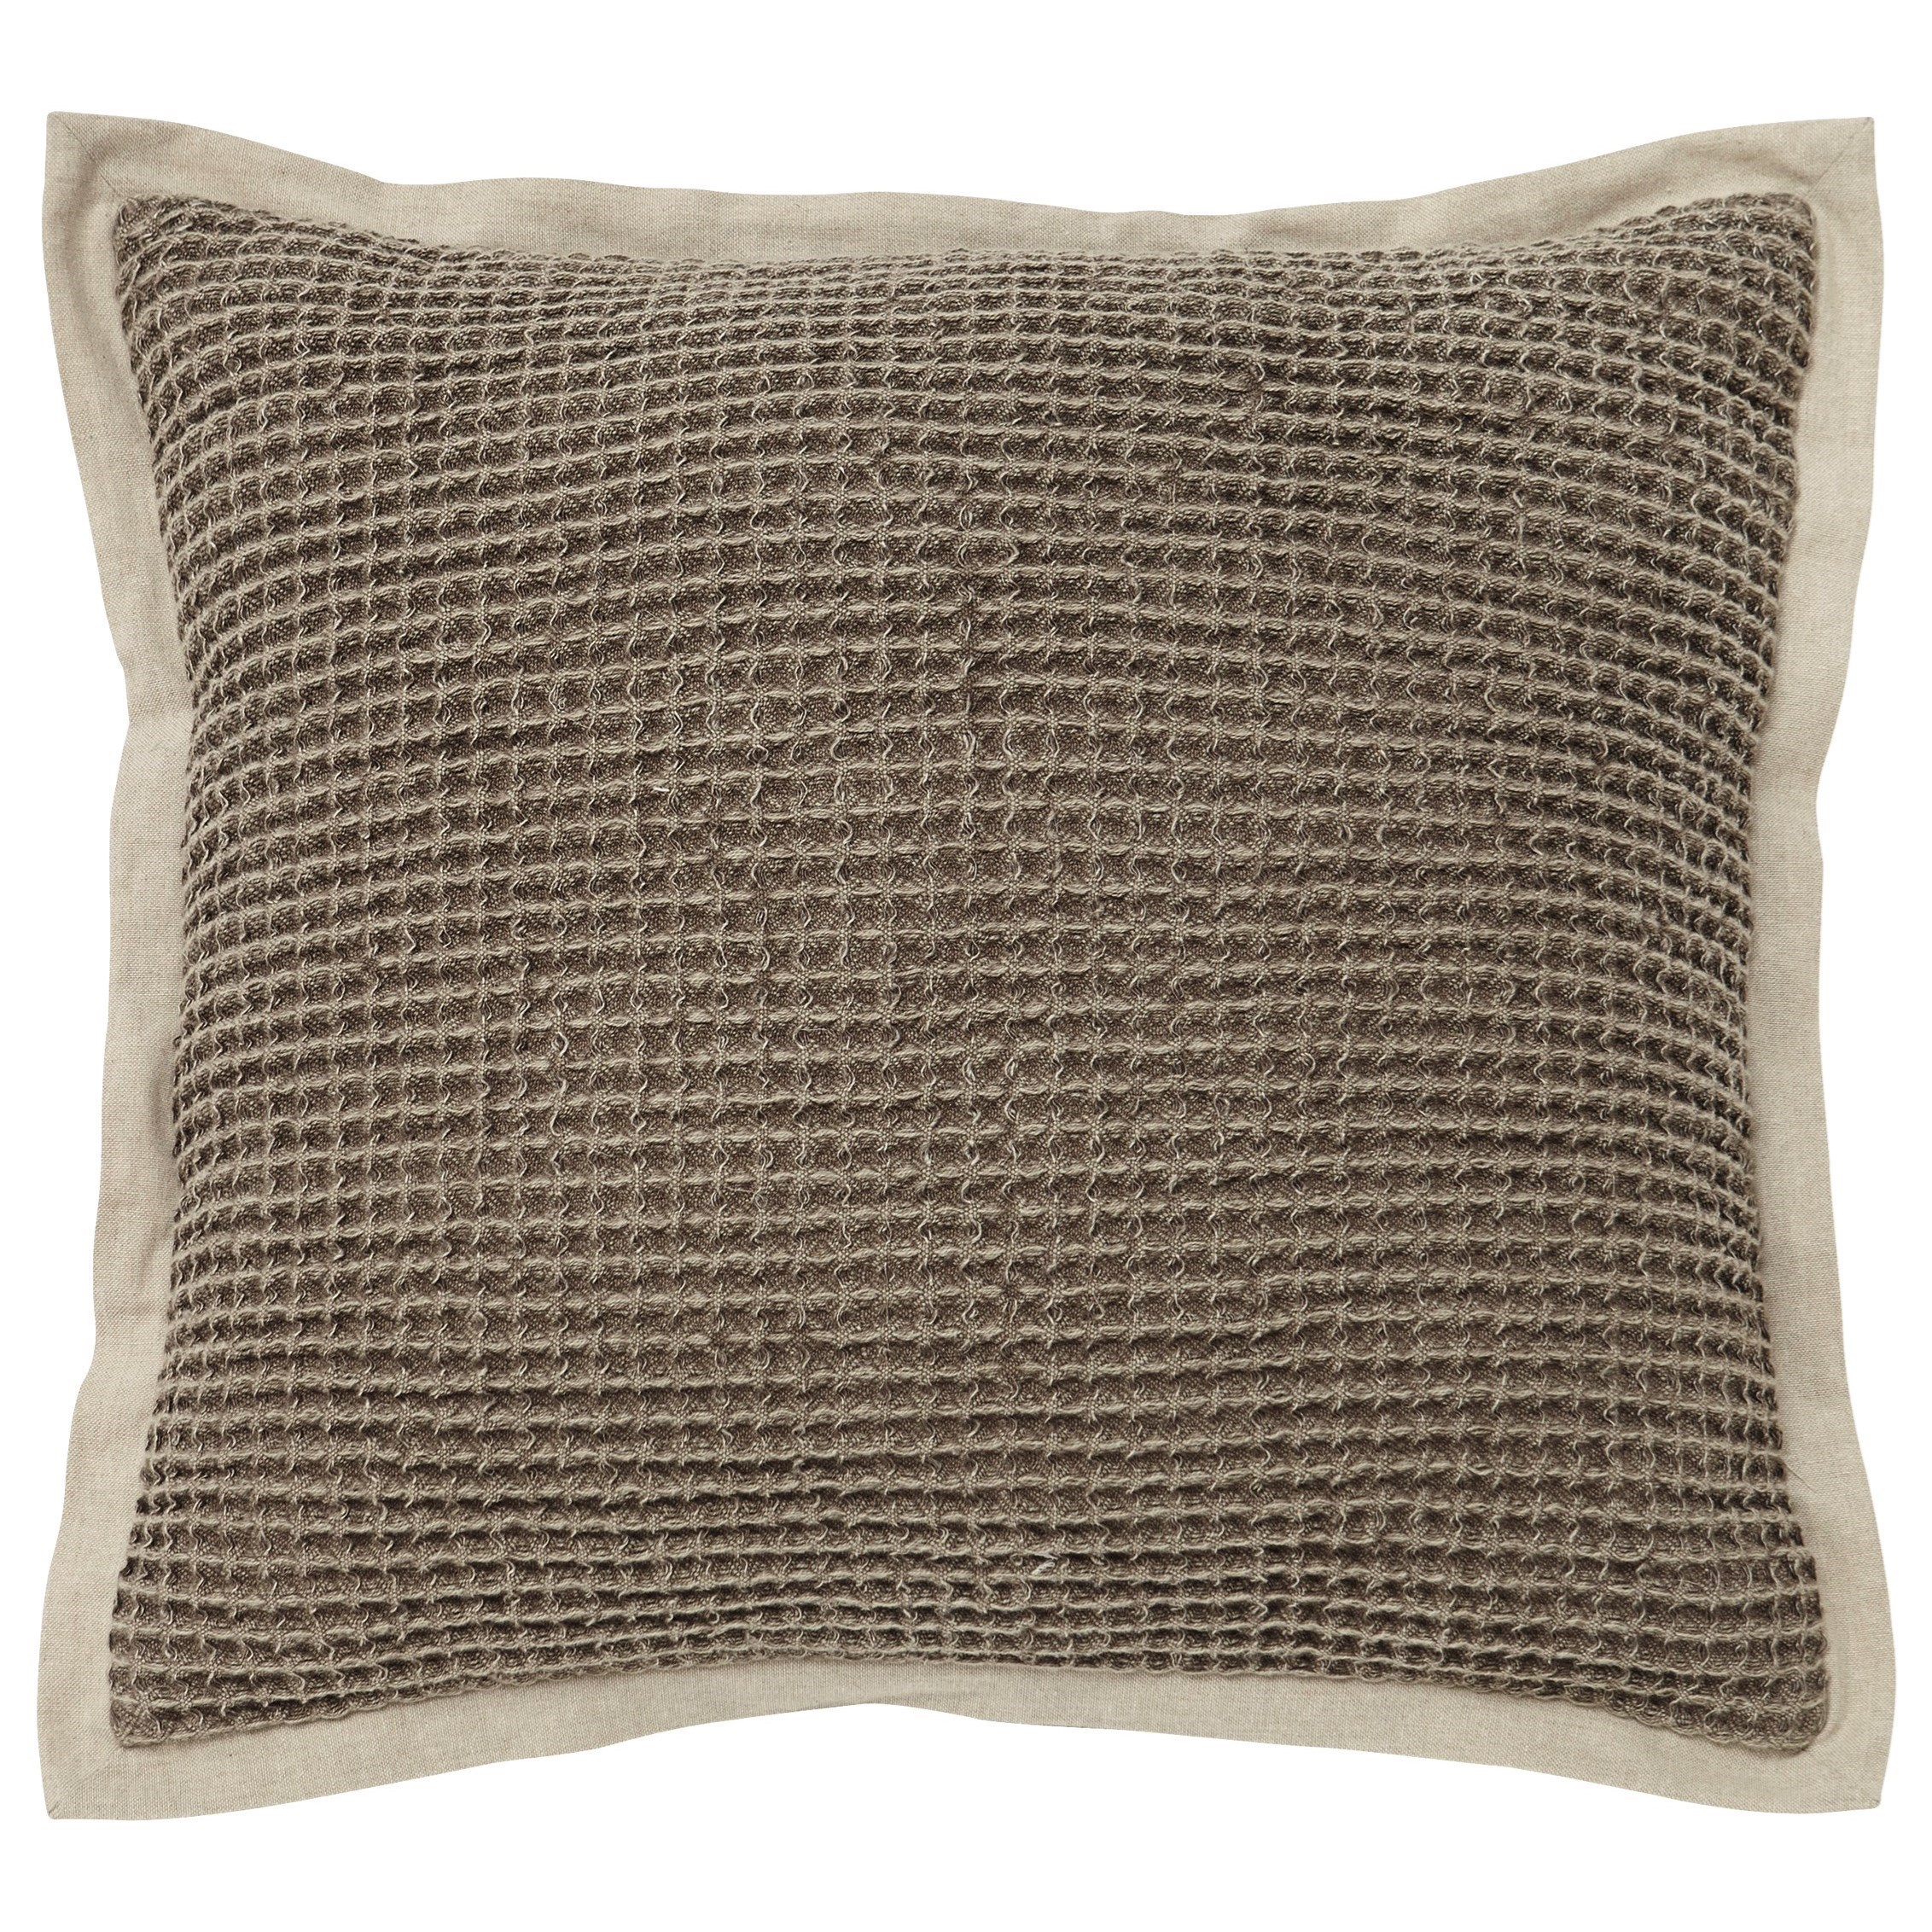 Signature Design by Ashley Furniture Pillows Wrexyville